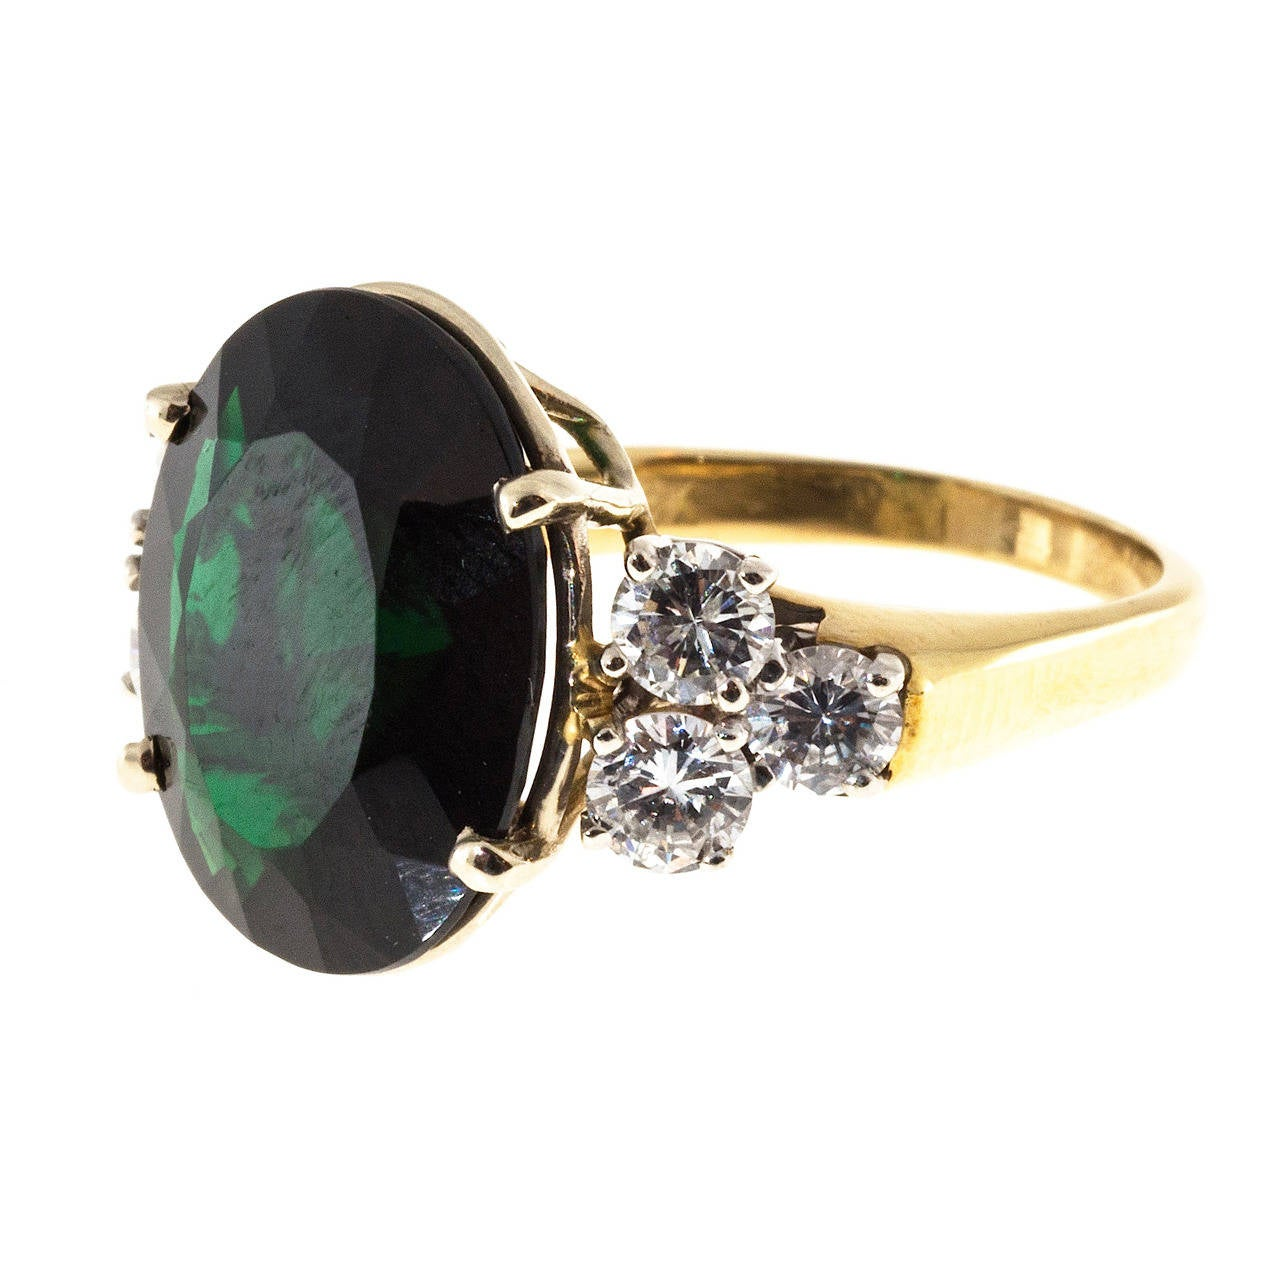 tourmaline from rings diamond products yellow green ring engagement with granules white ruth tomlinson champagne gold cocktail and